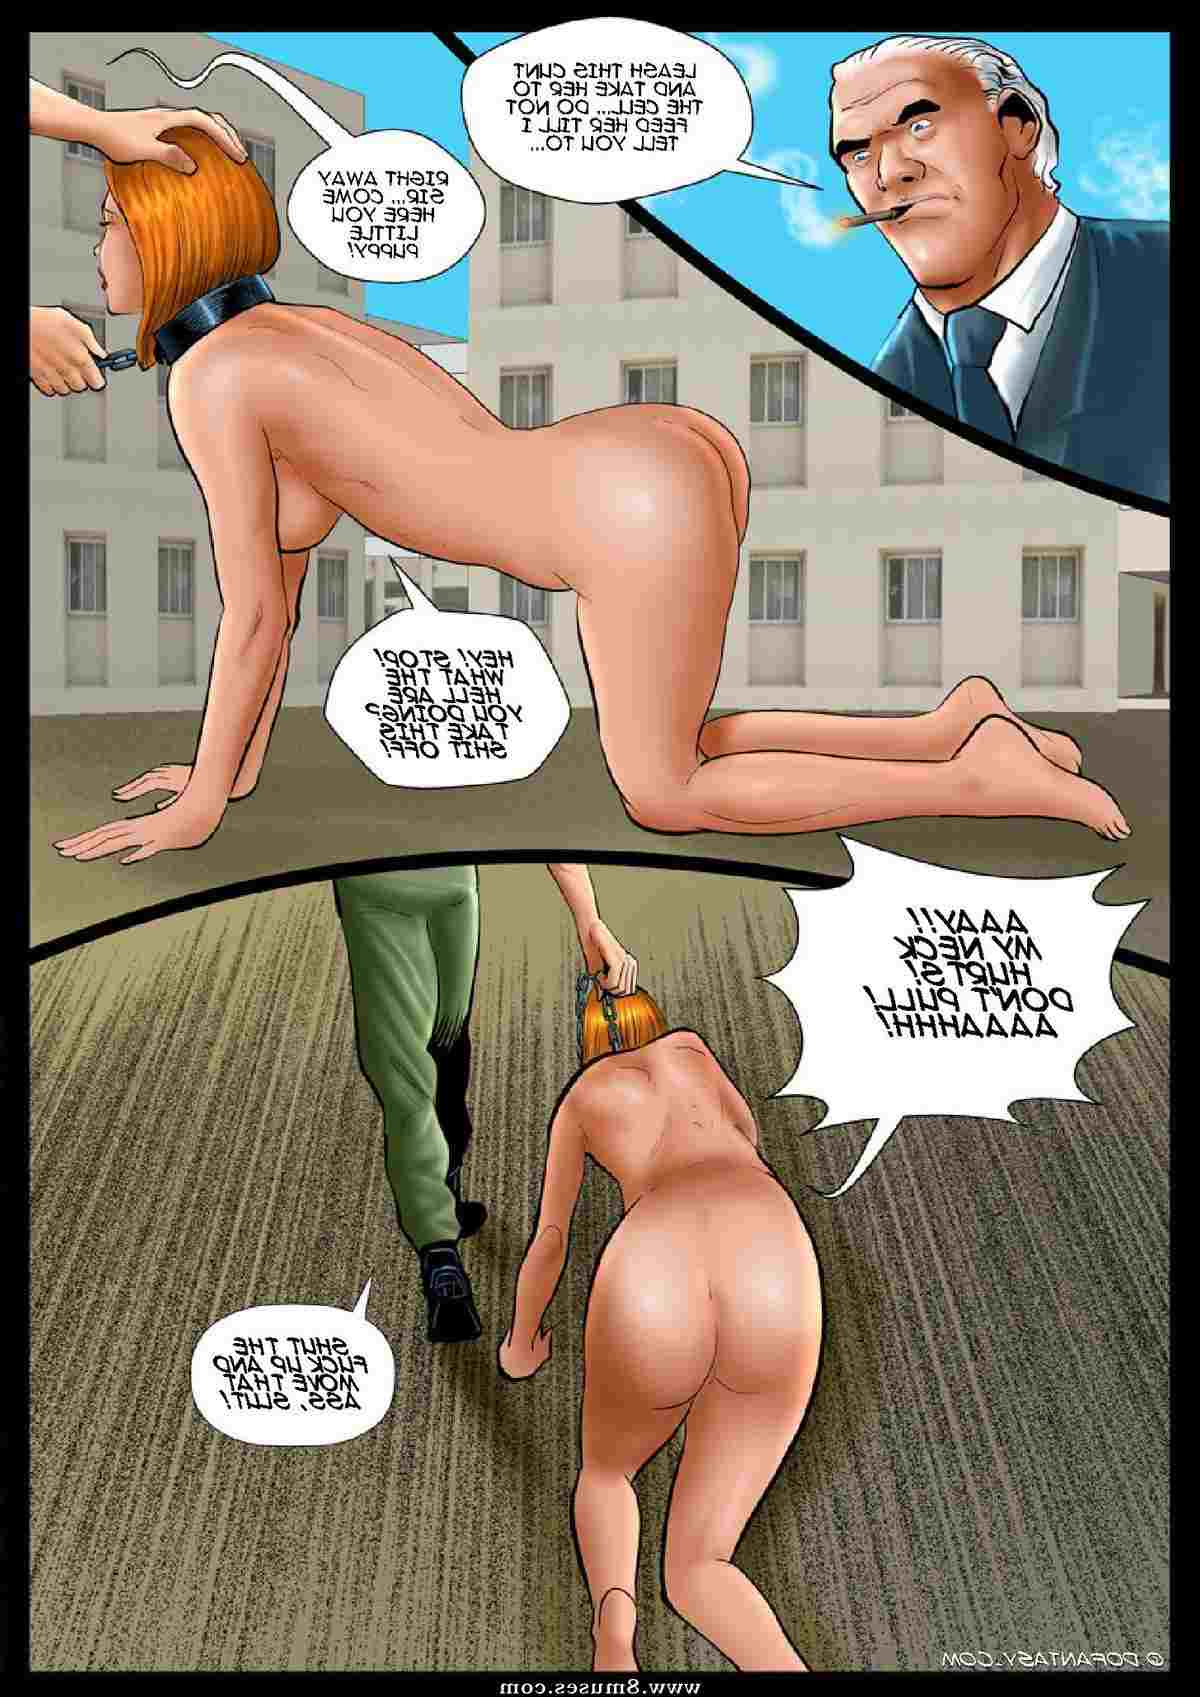 Fansadox-Comics/401-500/Fansadox-413-A-Bold-Officer-Cagri Fansadox_413_-_A_Bold_Officer_-_Cagri__8muses_-_Sex_and_Porn_Comics_11.jpg